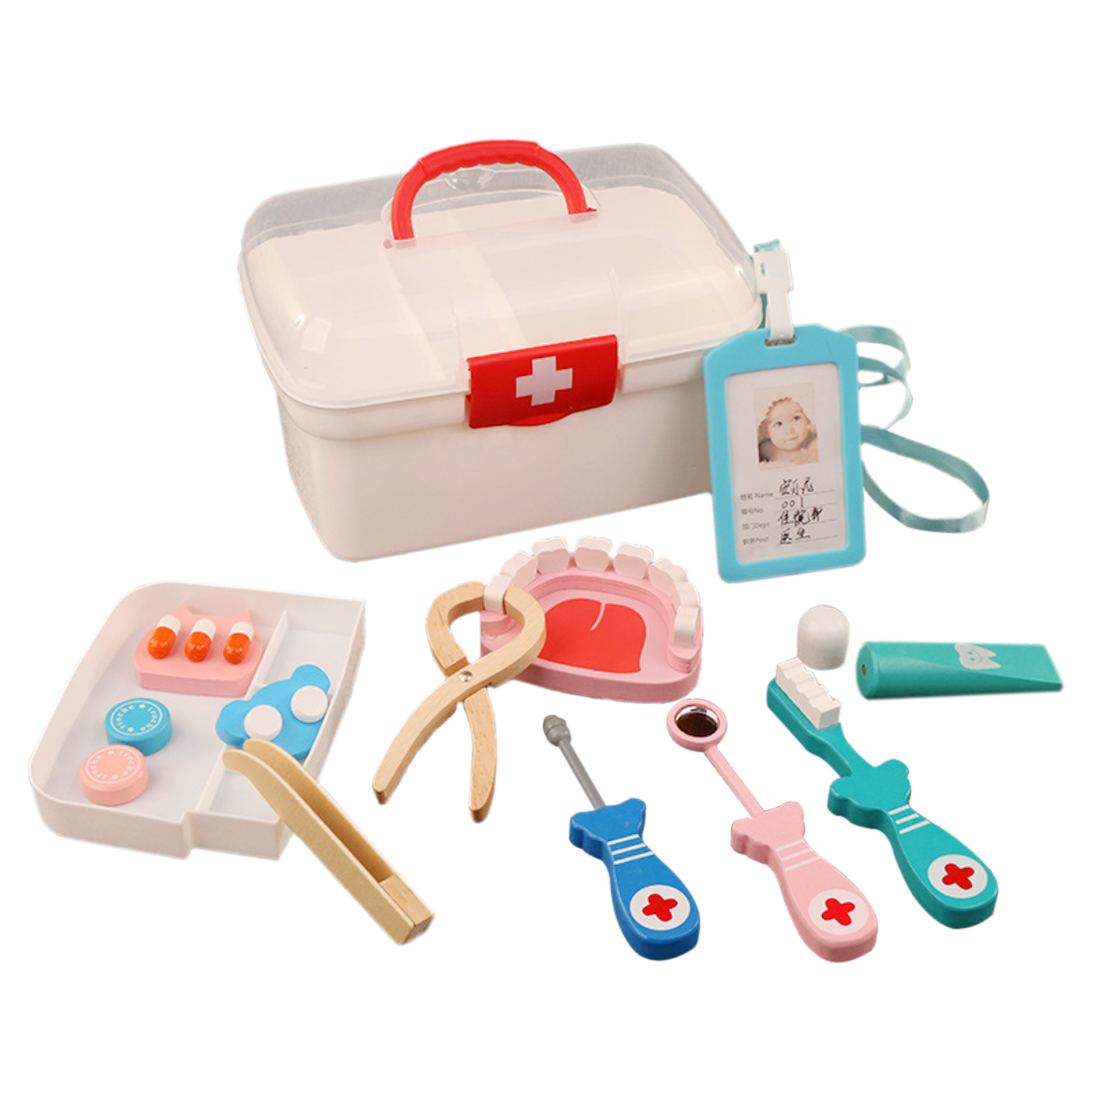 13PCS Wooden Baby toy Funny play Real Life Cosplay Doctor Dentist Medicine Box Pretend dokter speelgoed Wooden toy kids toys